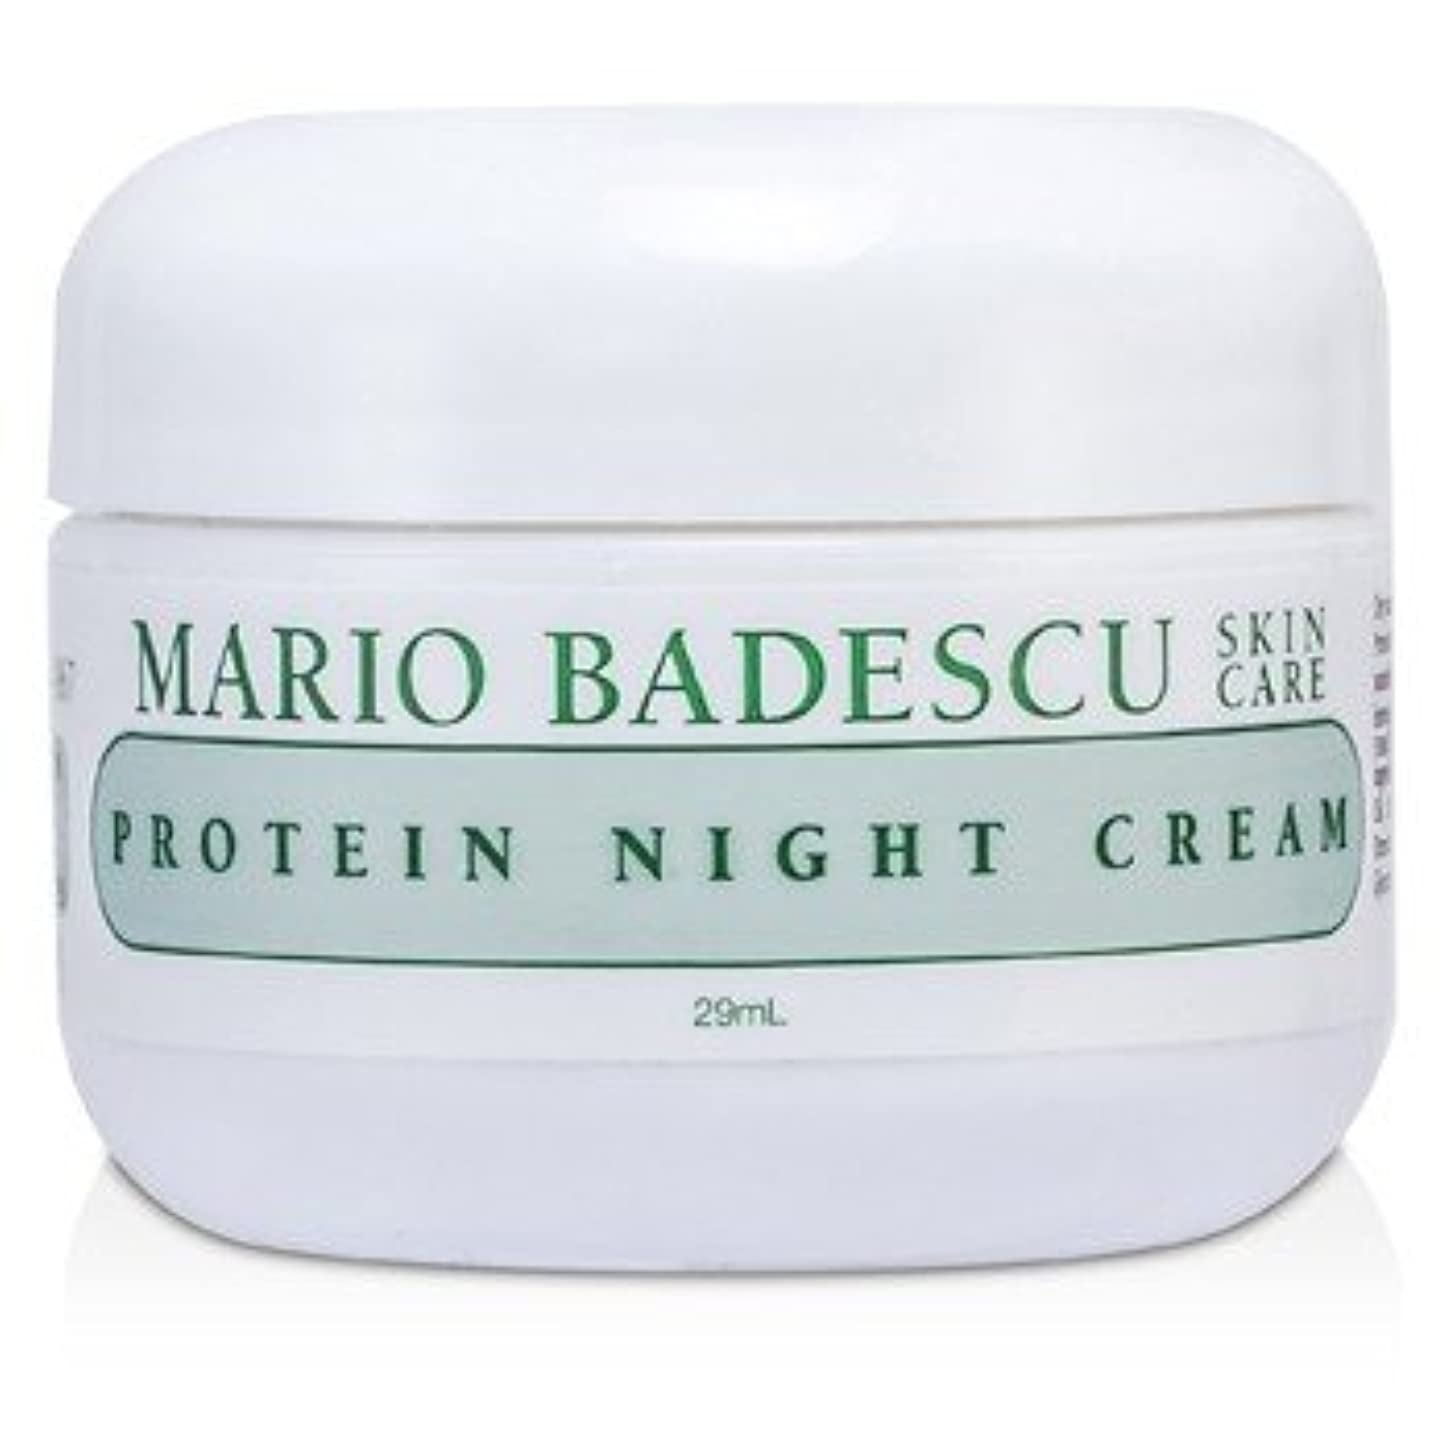 郵便番号ラバシャツ[Mario Badescu] Protein Night Cream - For Dry/ Sensitive Skin Types 29ml/1oz